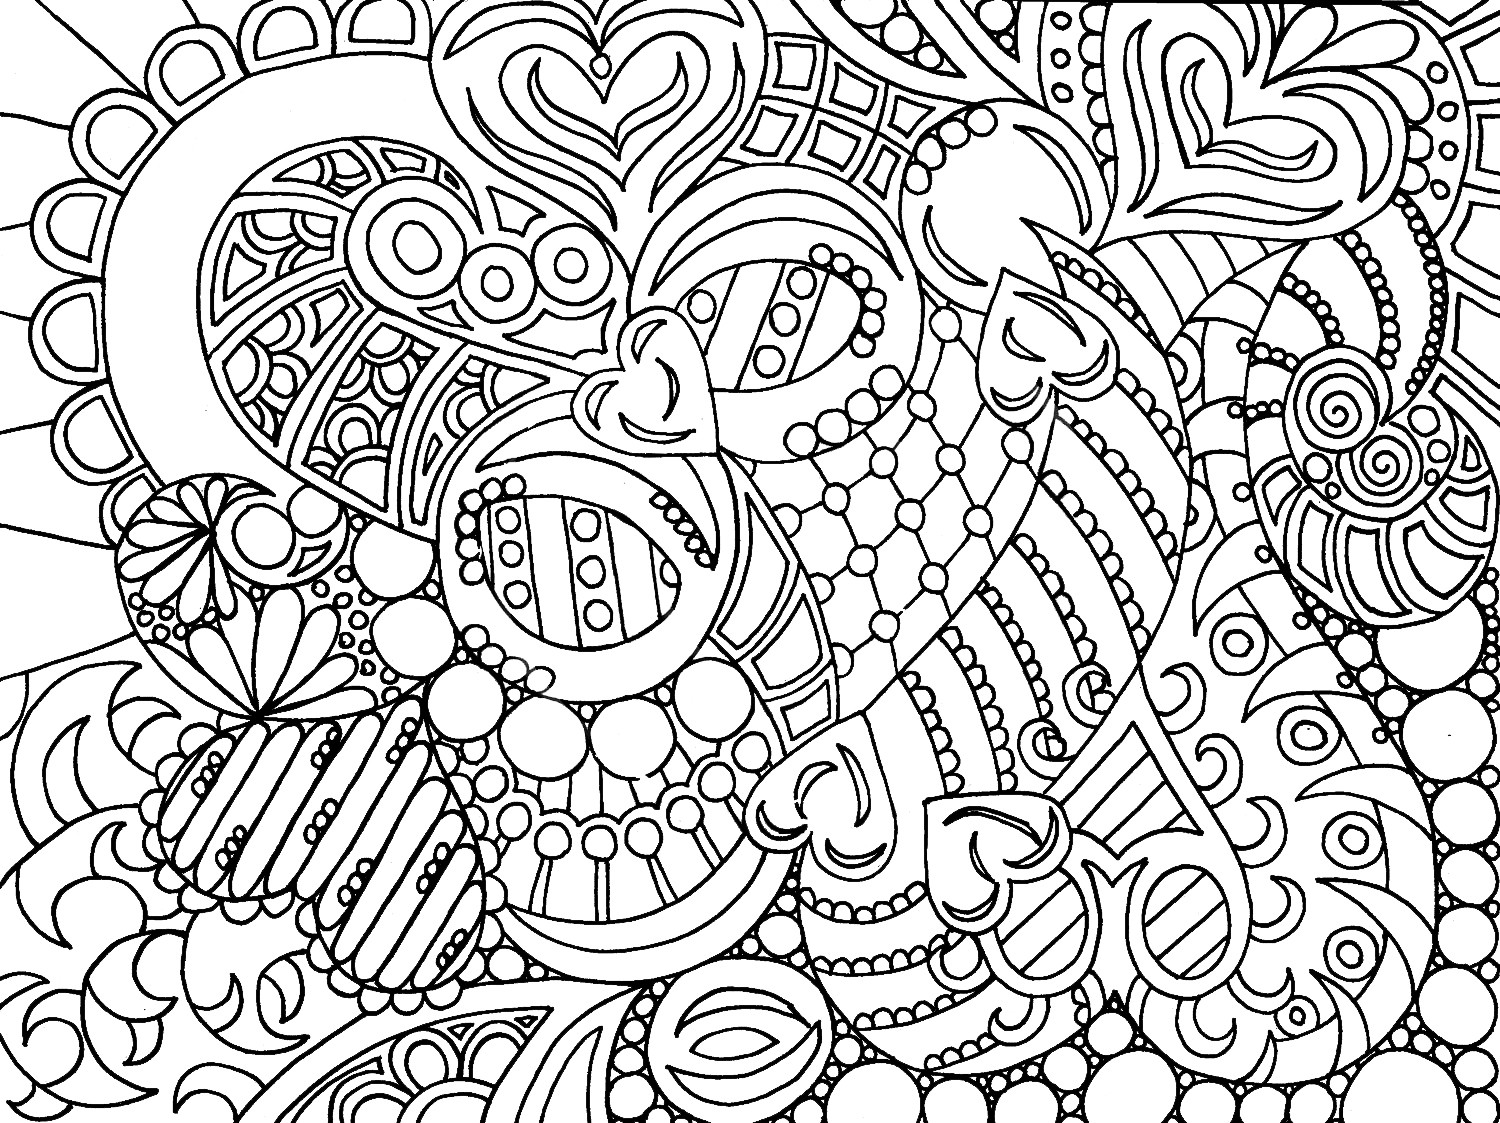 Free Coloring Pages For Adults Printable  free coloring pages for adults